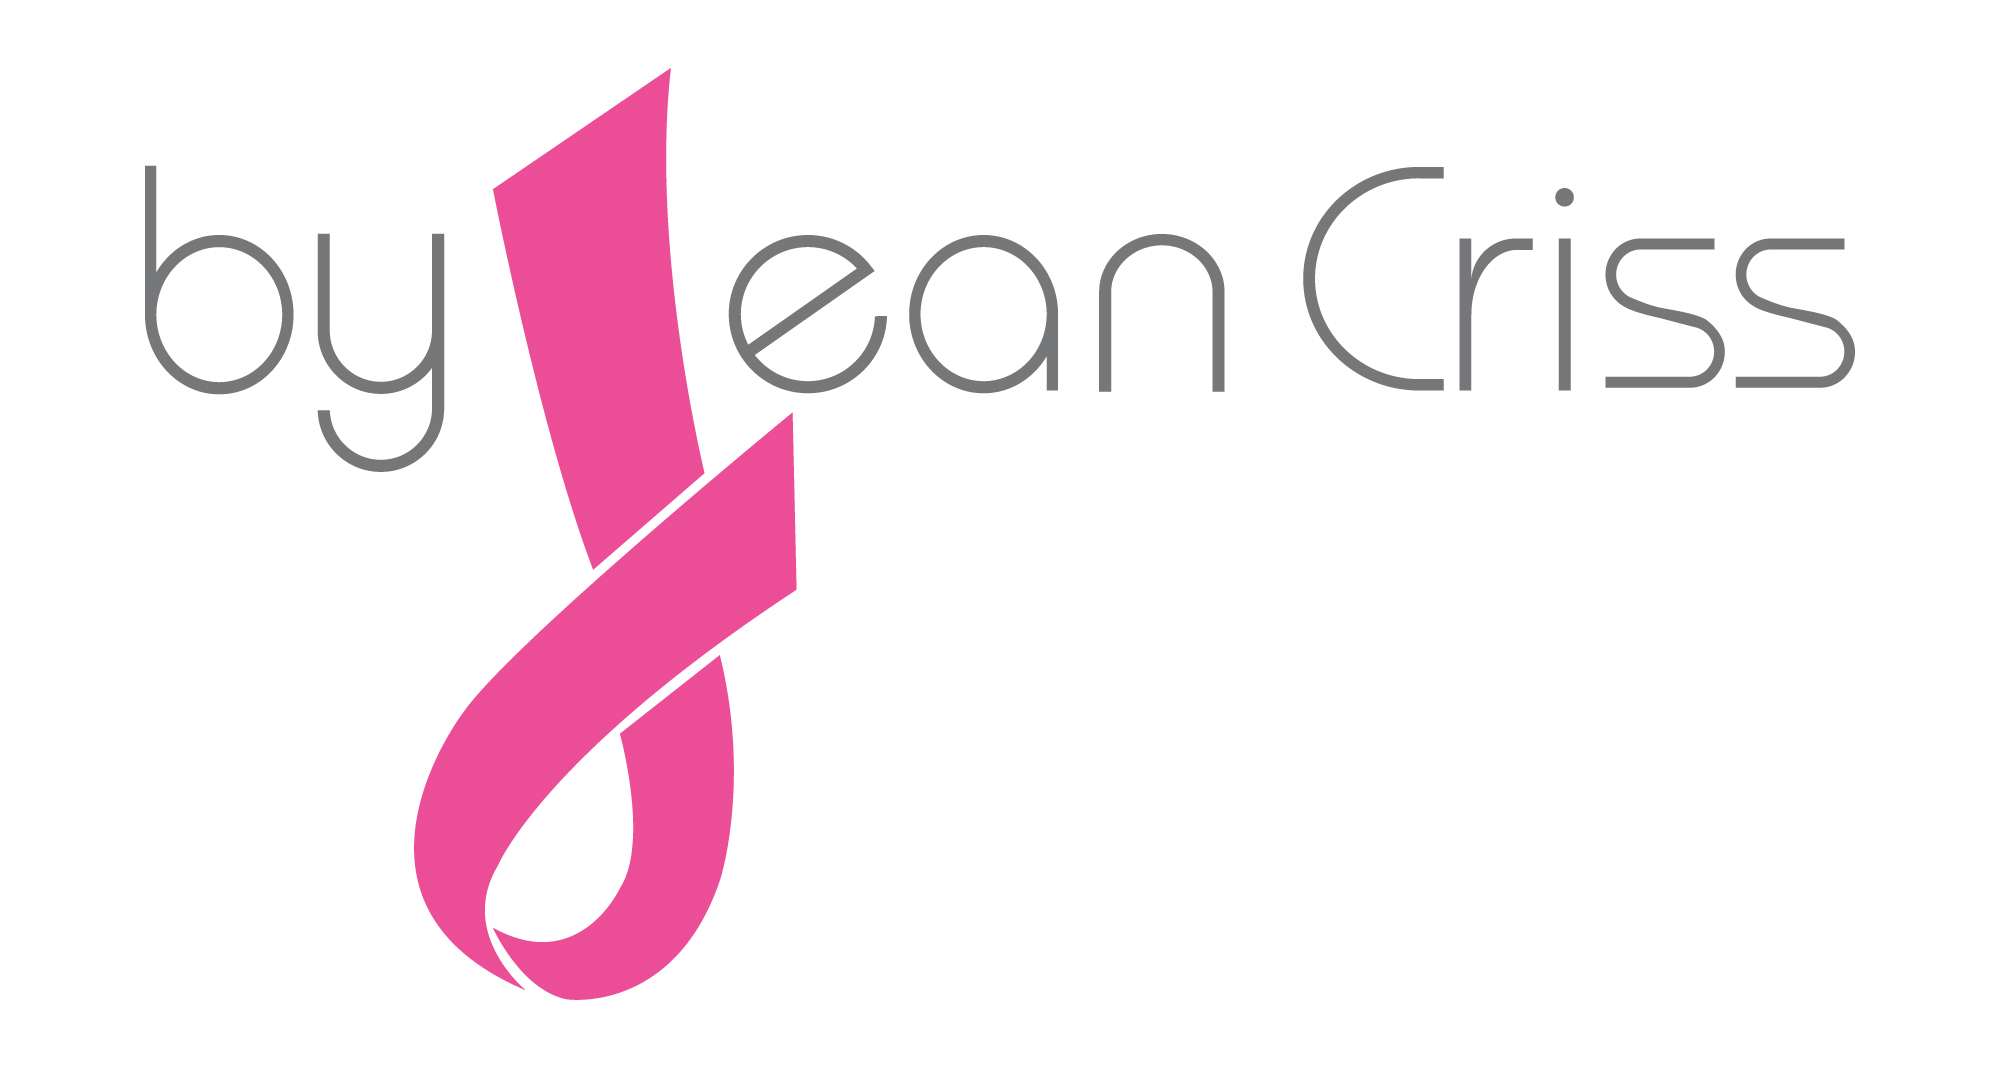 Learn more about Jean Criss' Survivor Story and CRISSCROSS Intimates at  http://CRISSCROSSIntimates.com